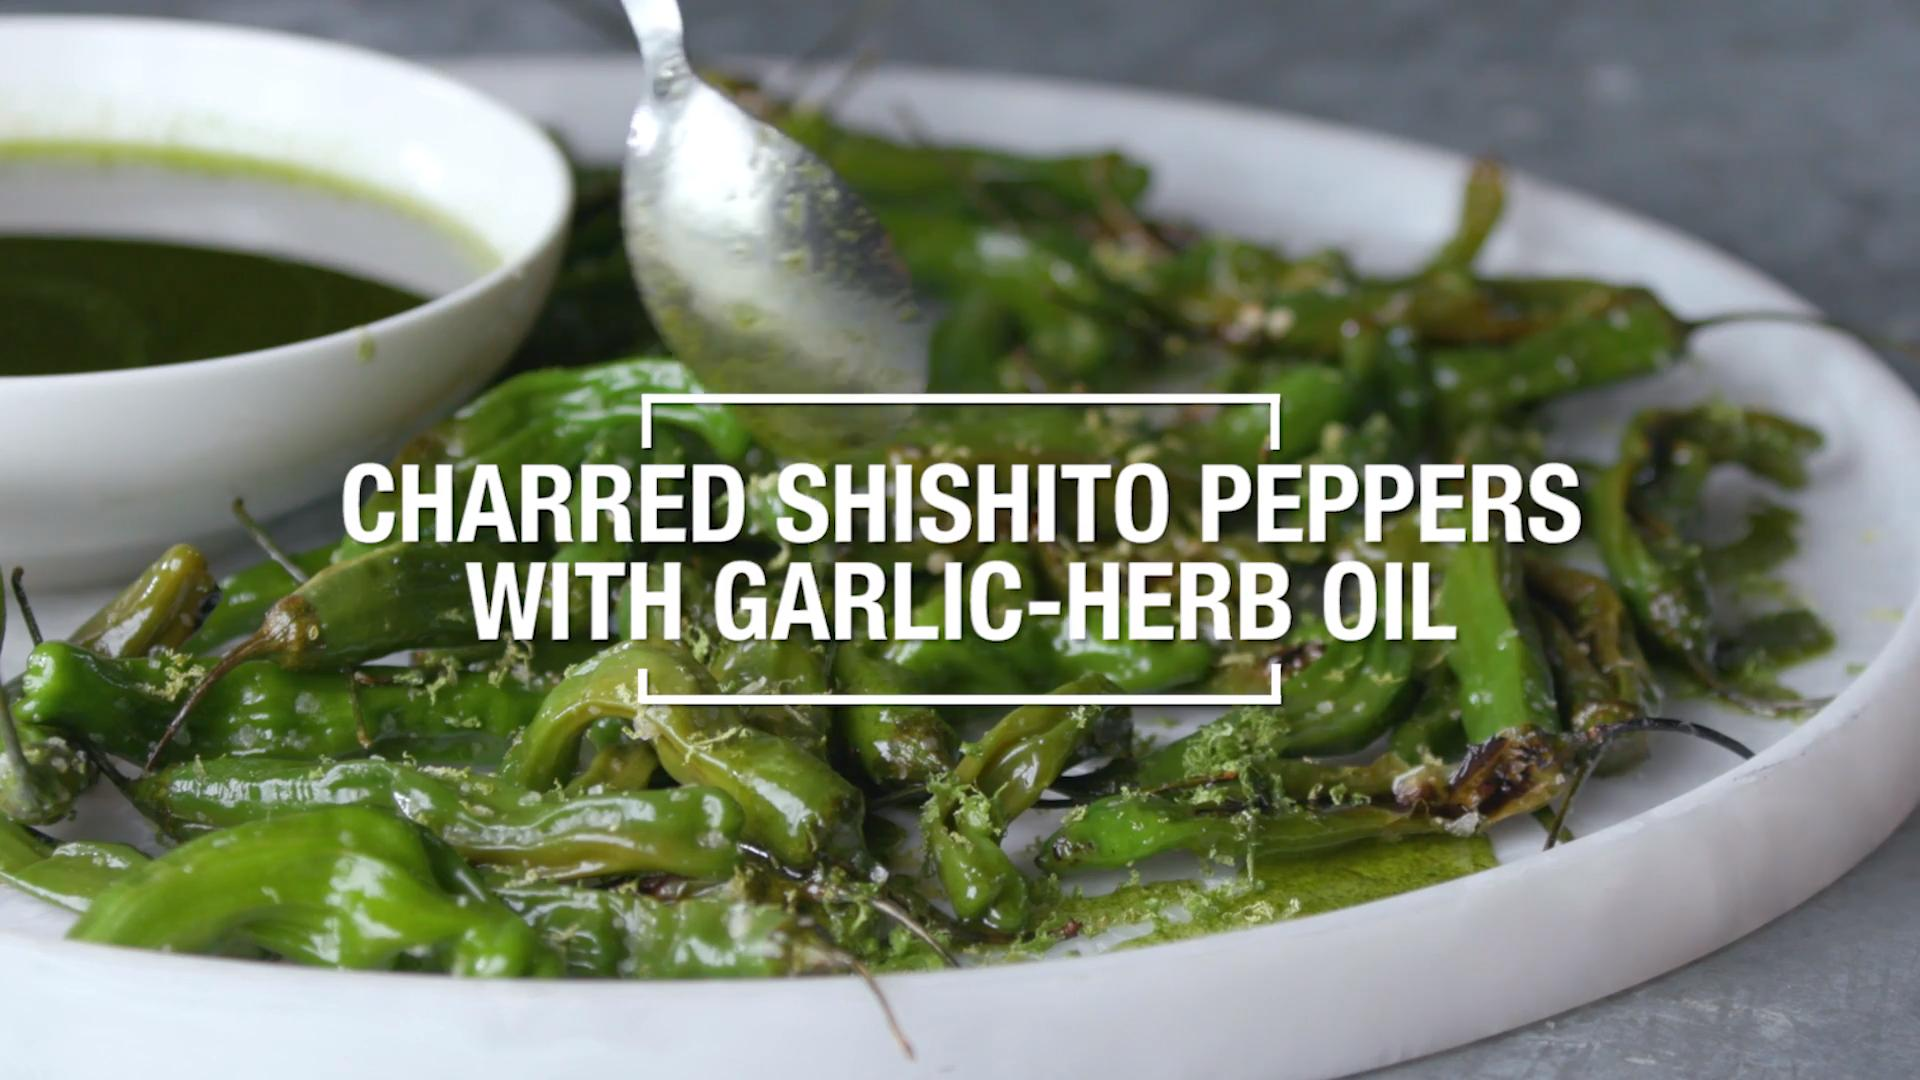 Charred Shishito Peppers with Garlic Herb Oil